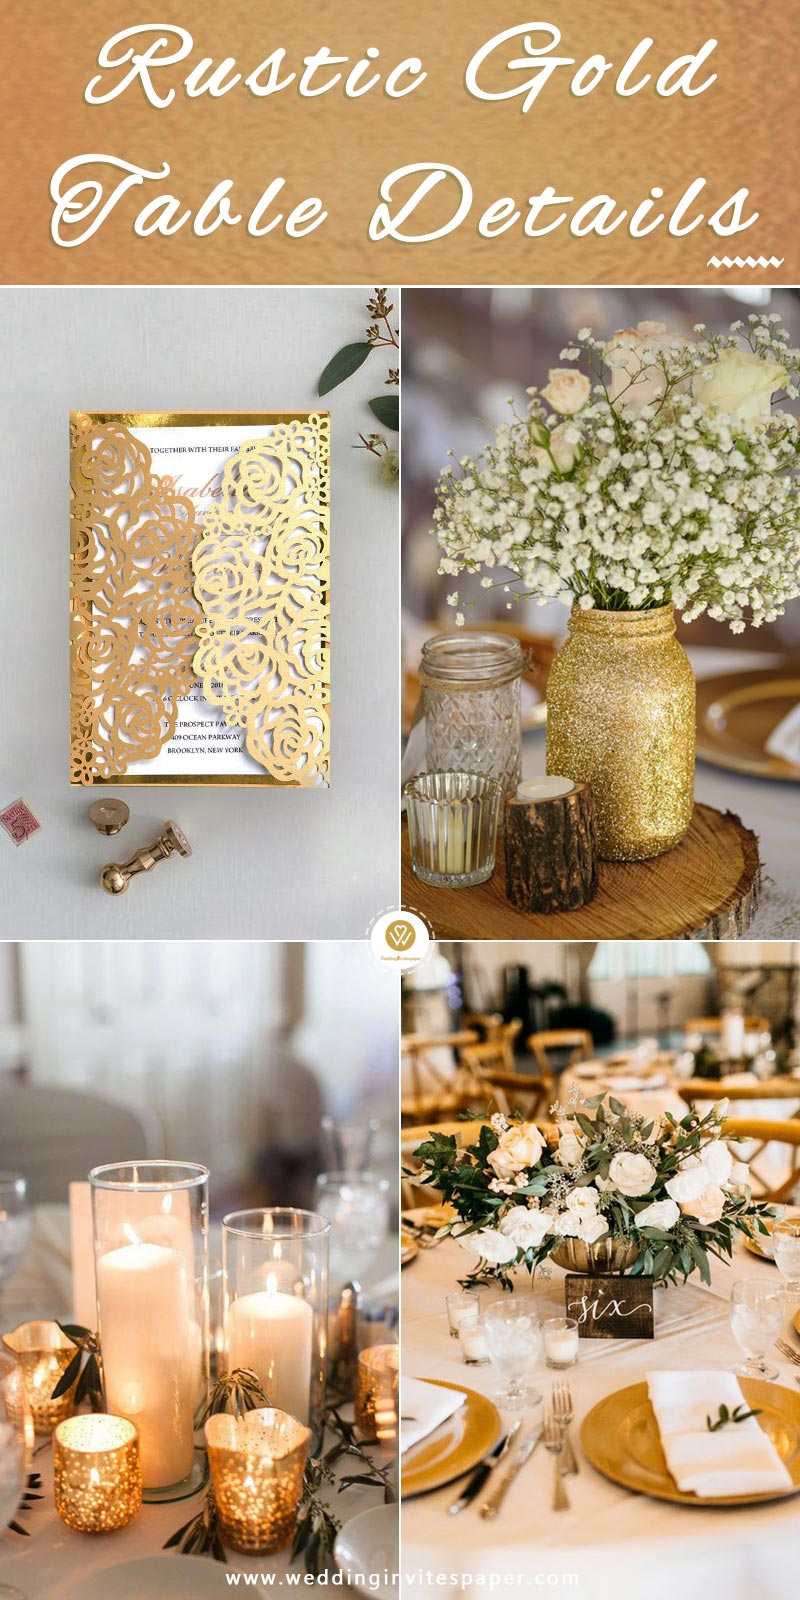 Rustic-Gold-Table-Details.jpg